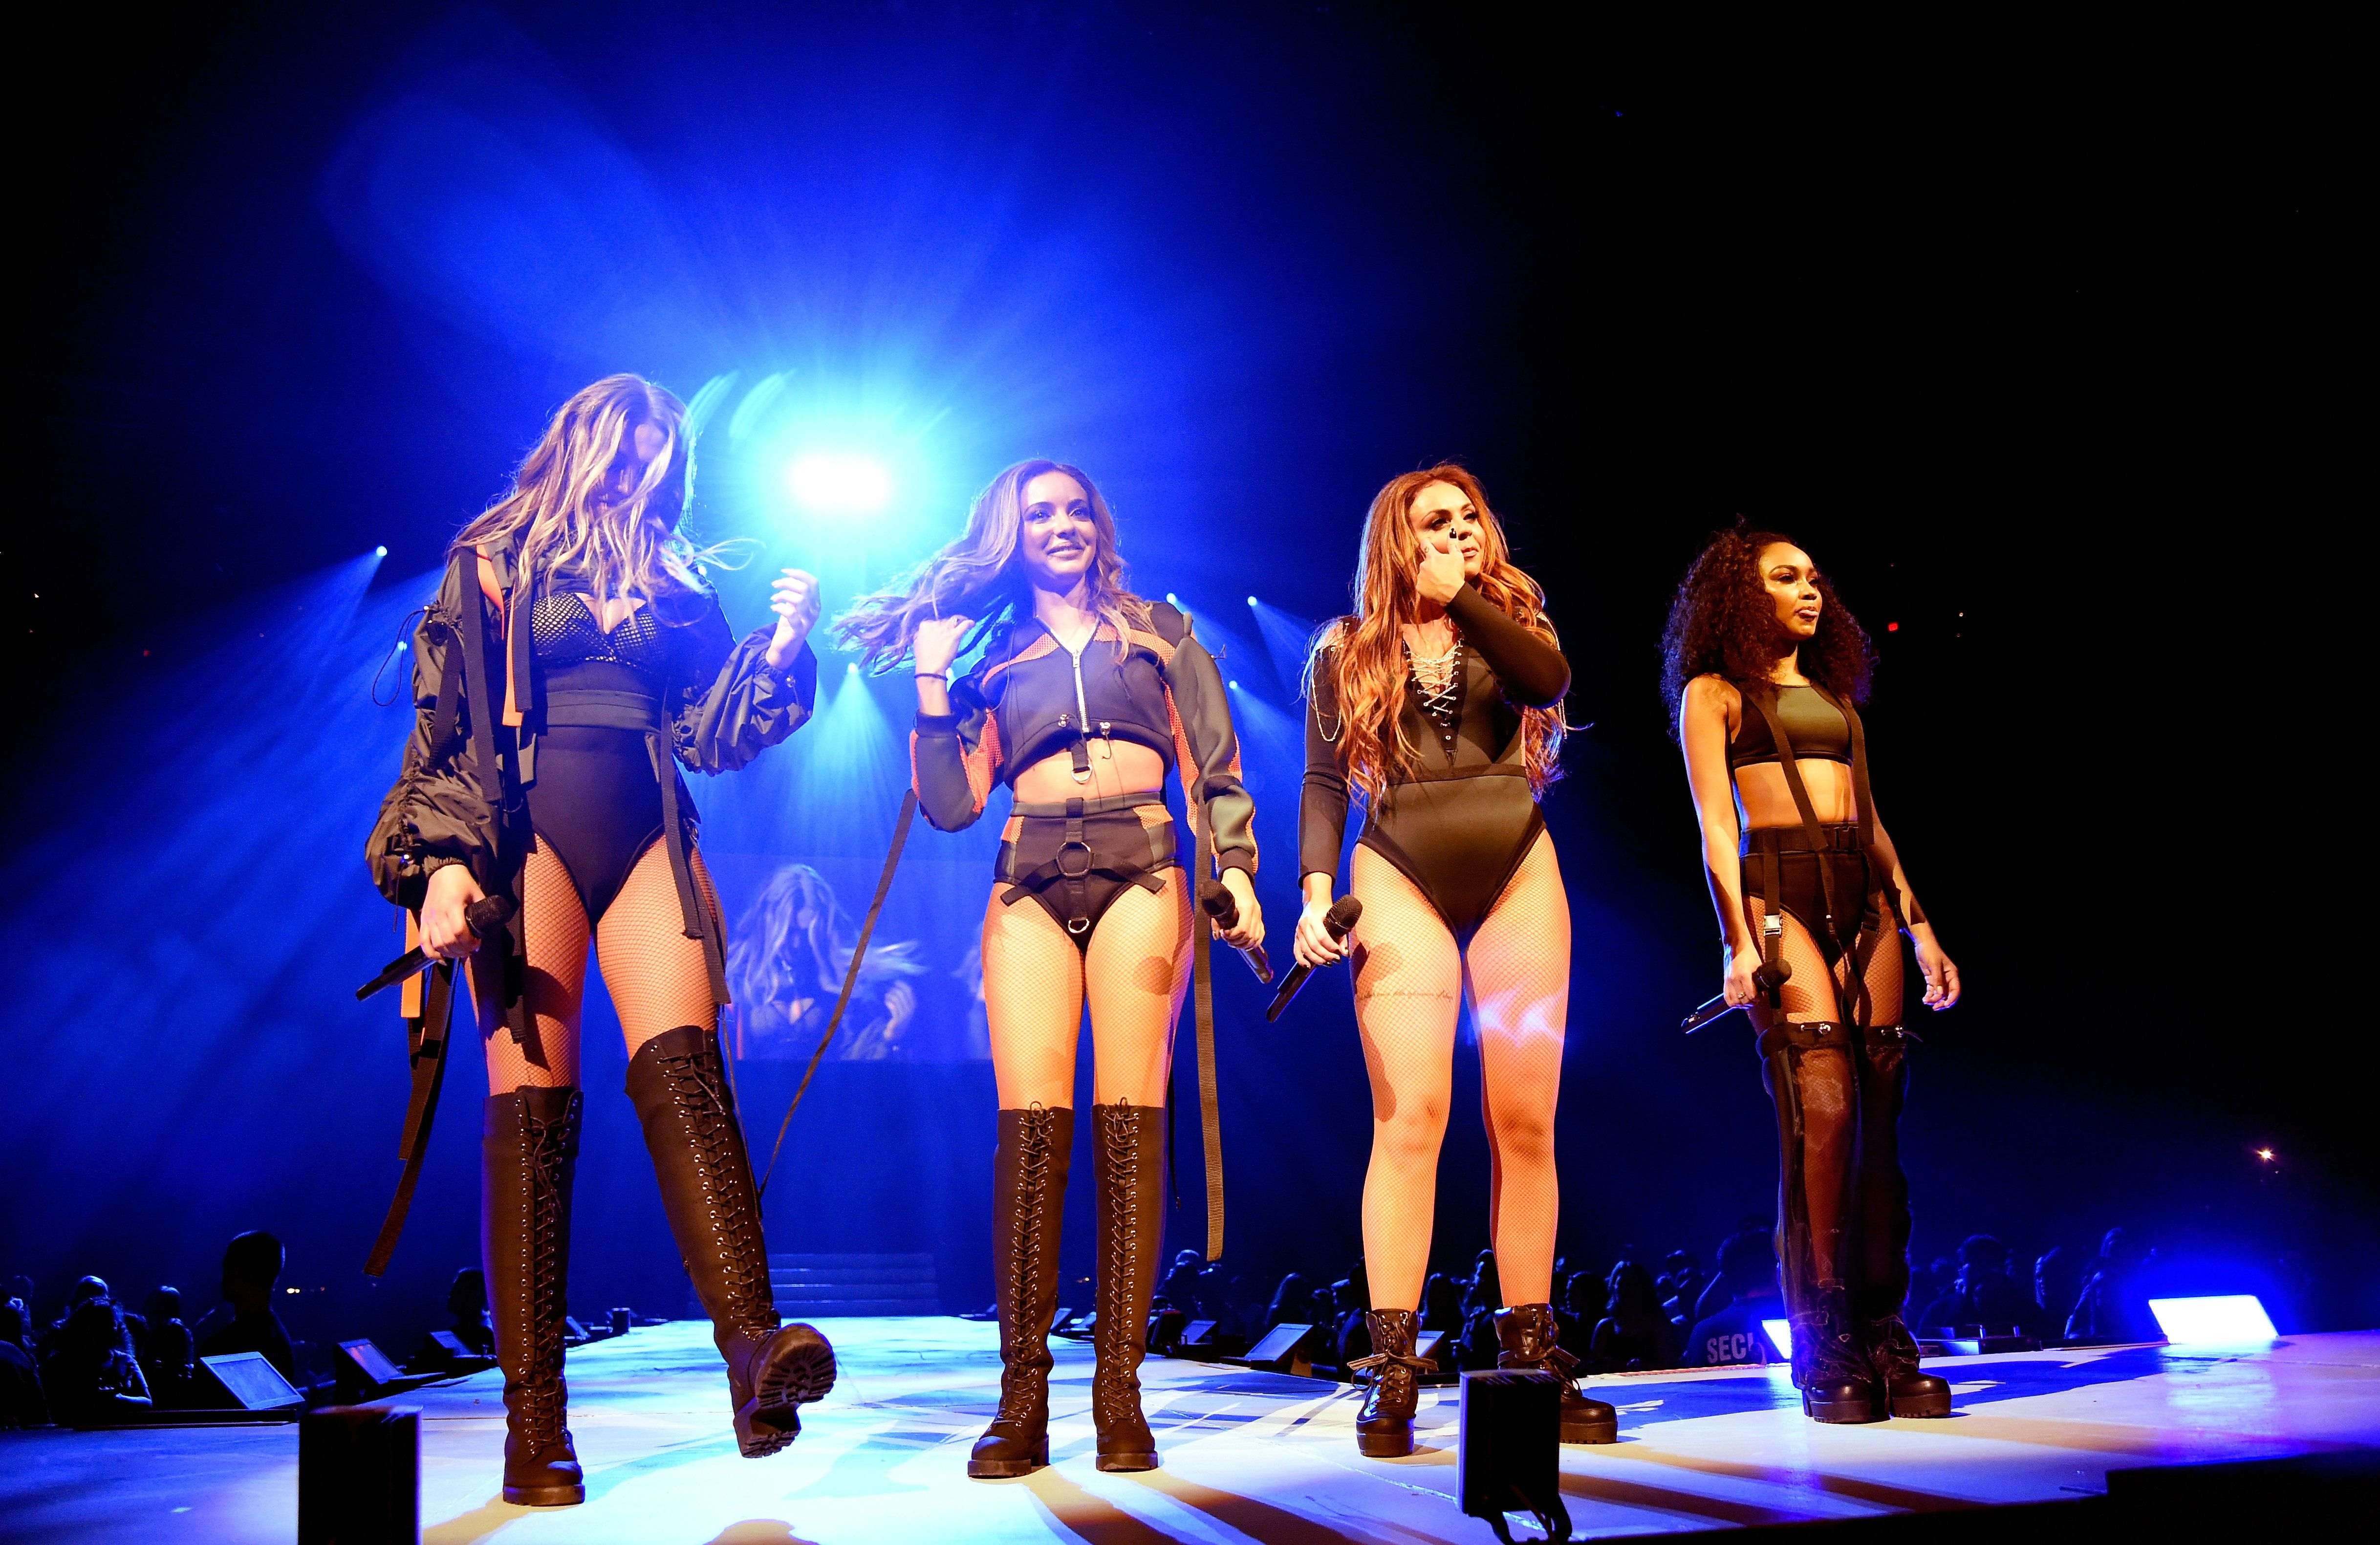 Little Mix Insist Revealing Stage Outfits Don't Conflict With Their Feminist Message